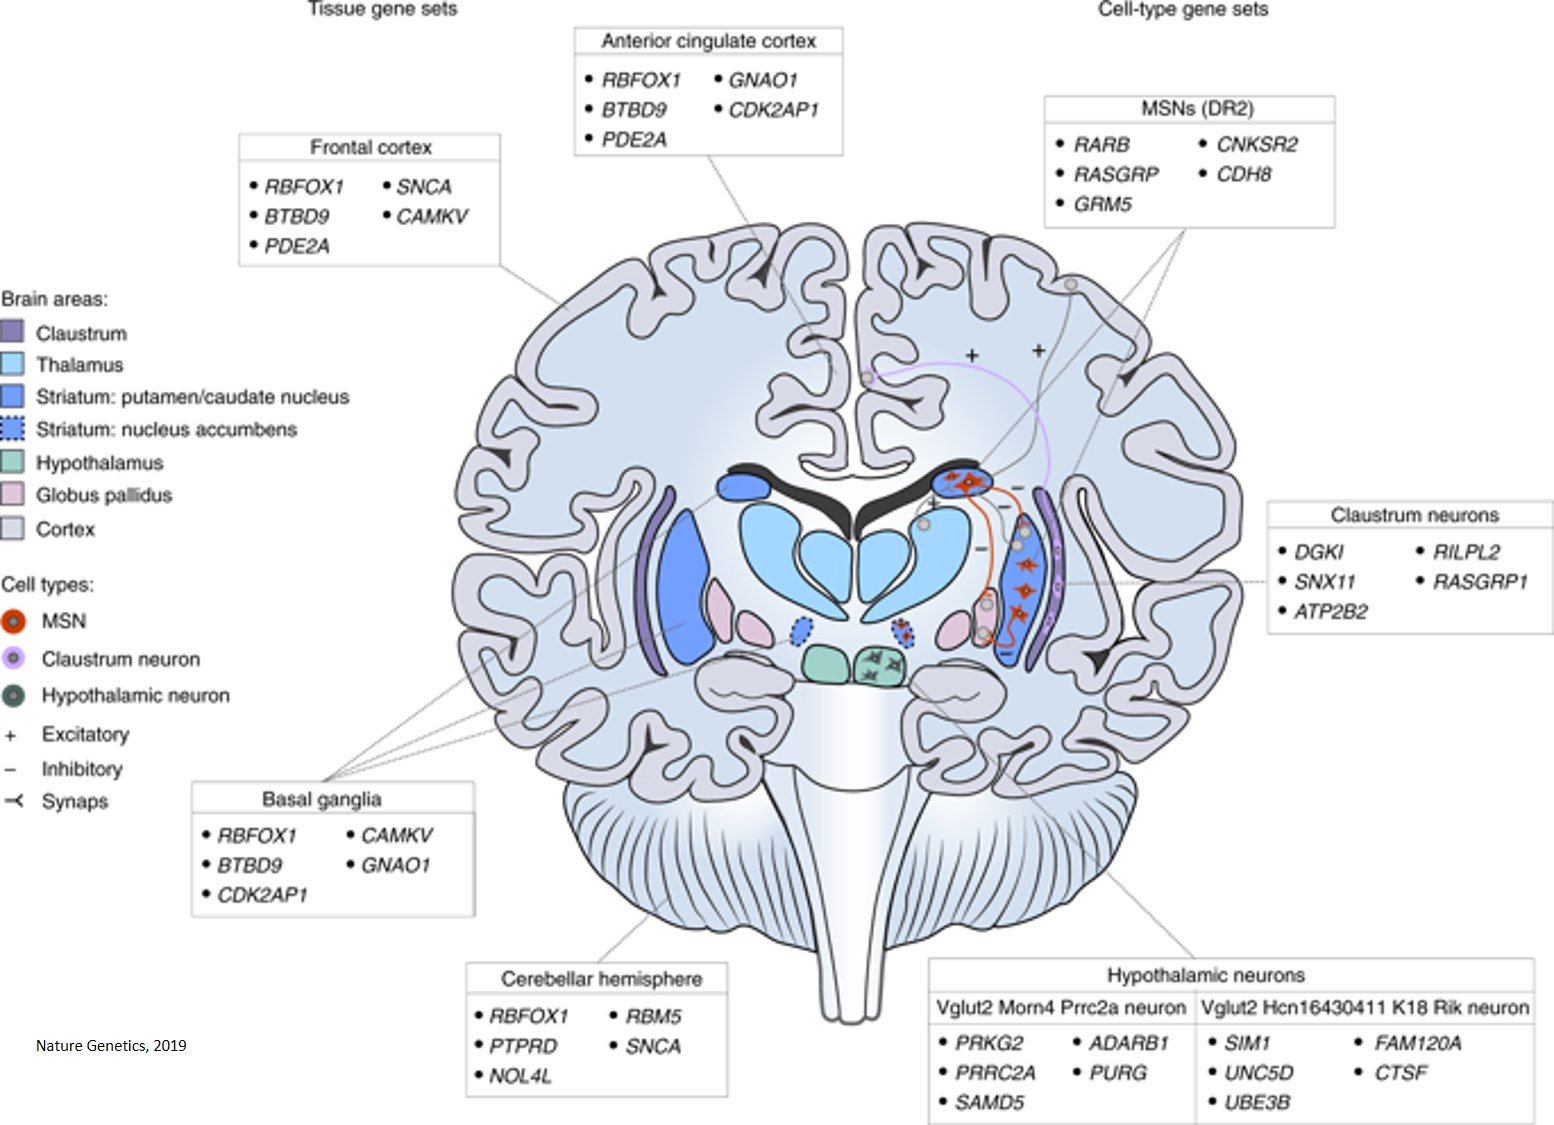 New risk loci and functional pathways involved in insomnia identified